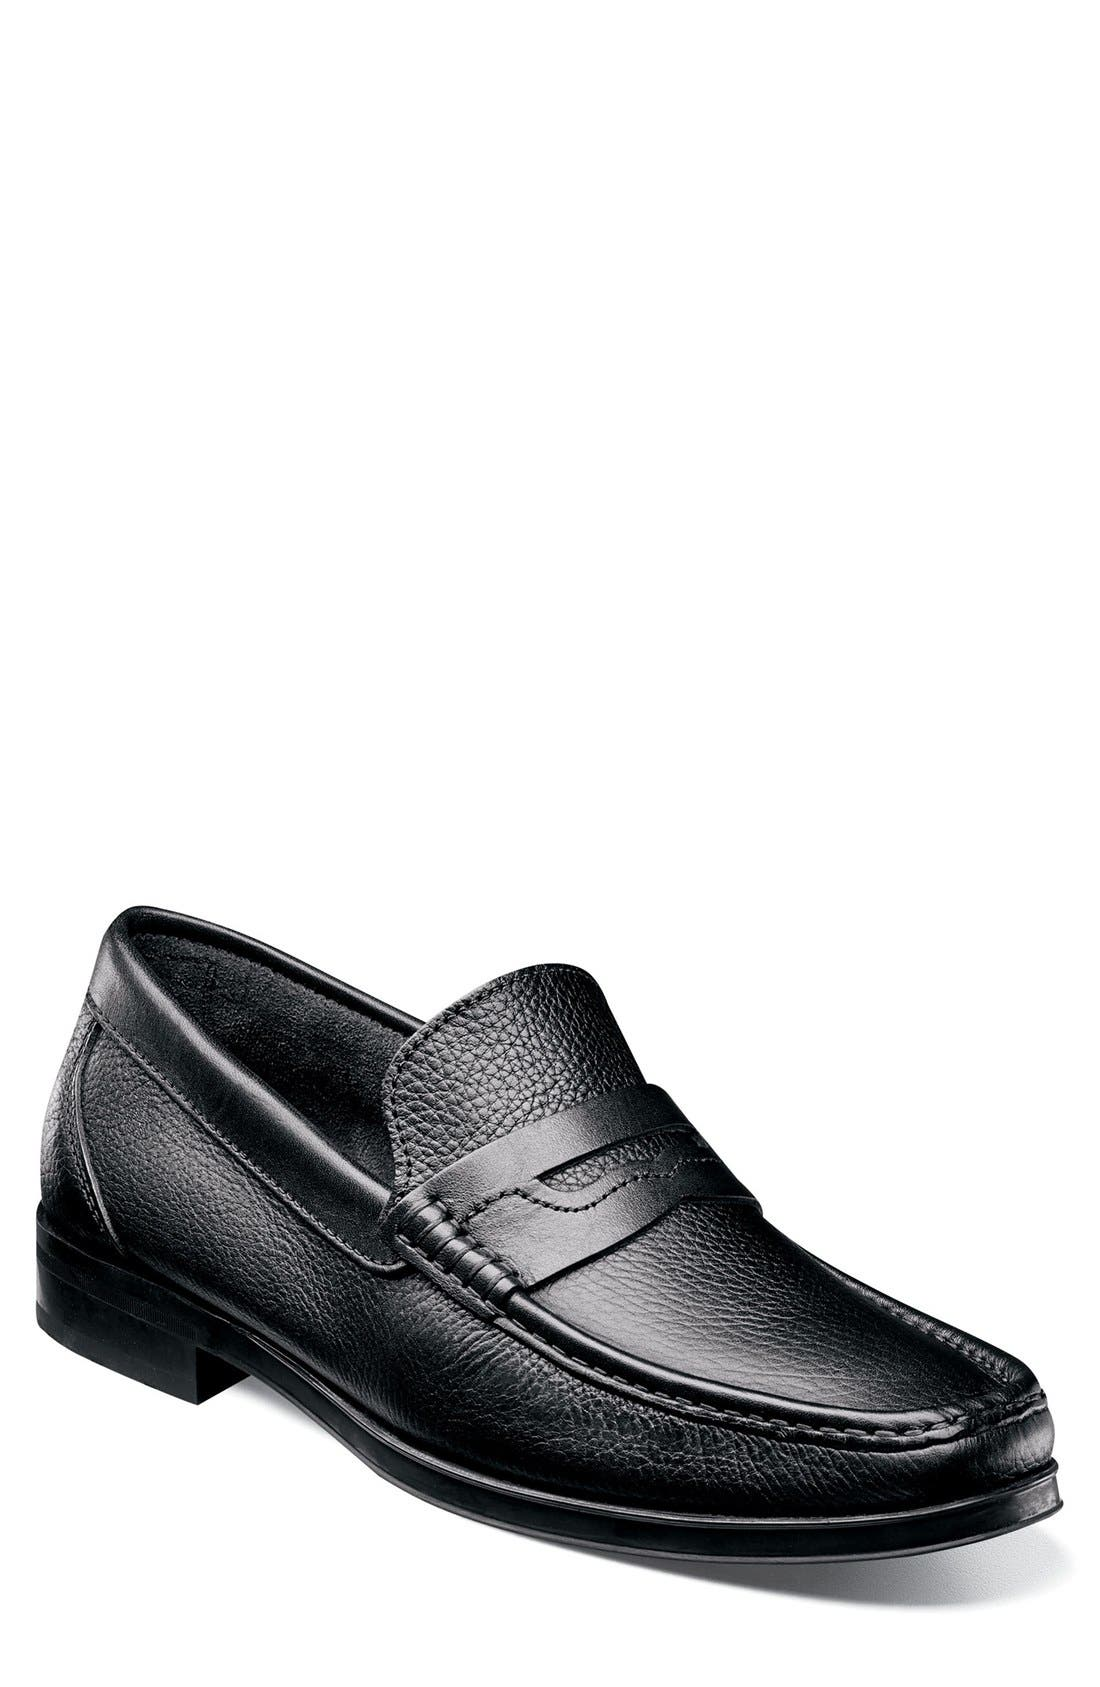 Westbrook Penny Loafer,                             Alternate thumbnail 25, color,